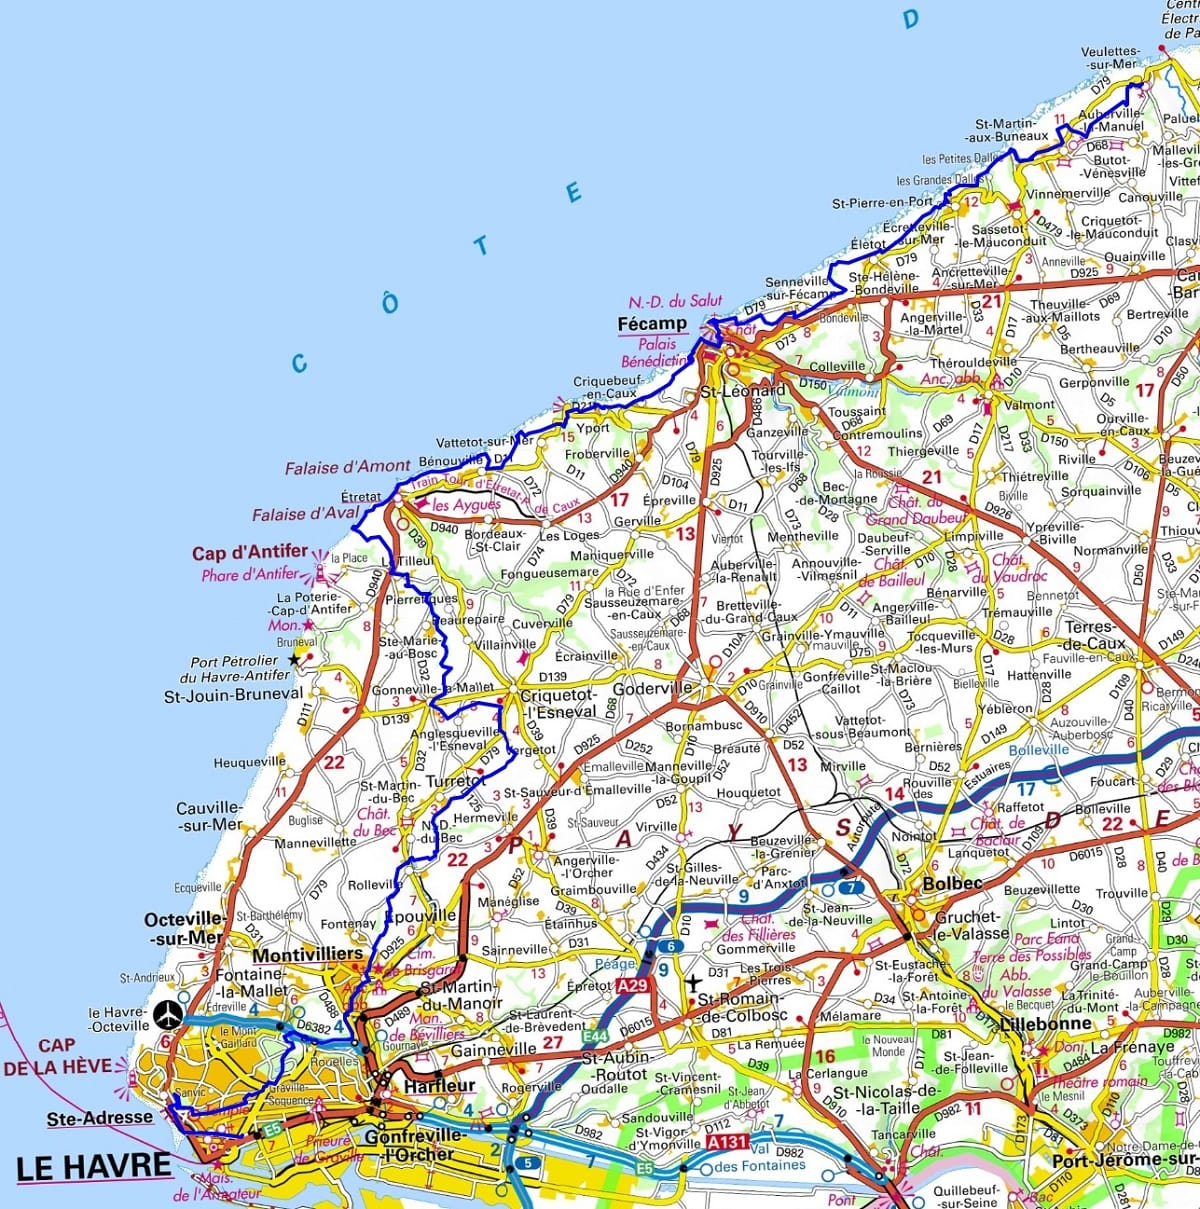 GR21 Hiking from Le Havre to Veulettes-sur-Mer (Seine-Maritime) 1